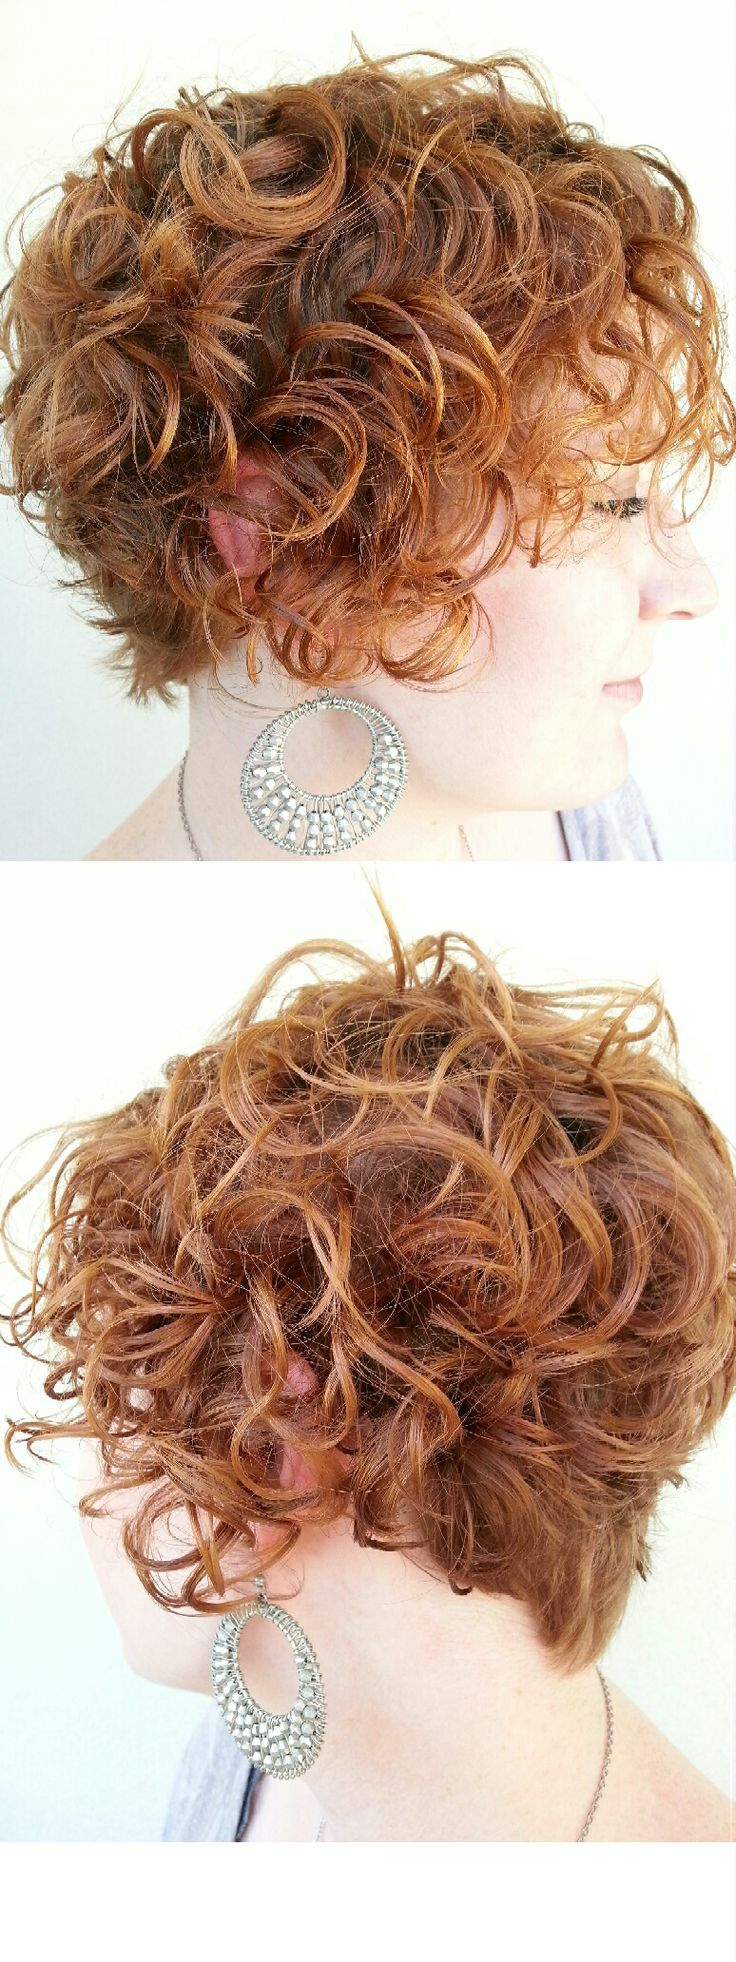 "#curly #hair #short ""Yep, pinning my own haircut. SO hard to find a decent curly cut!"""